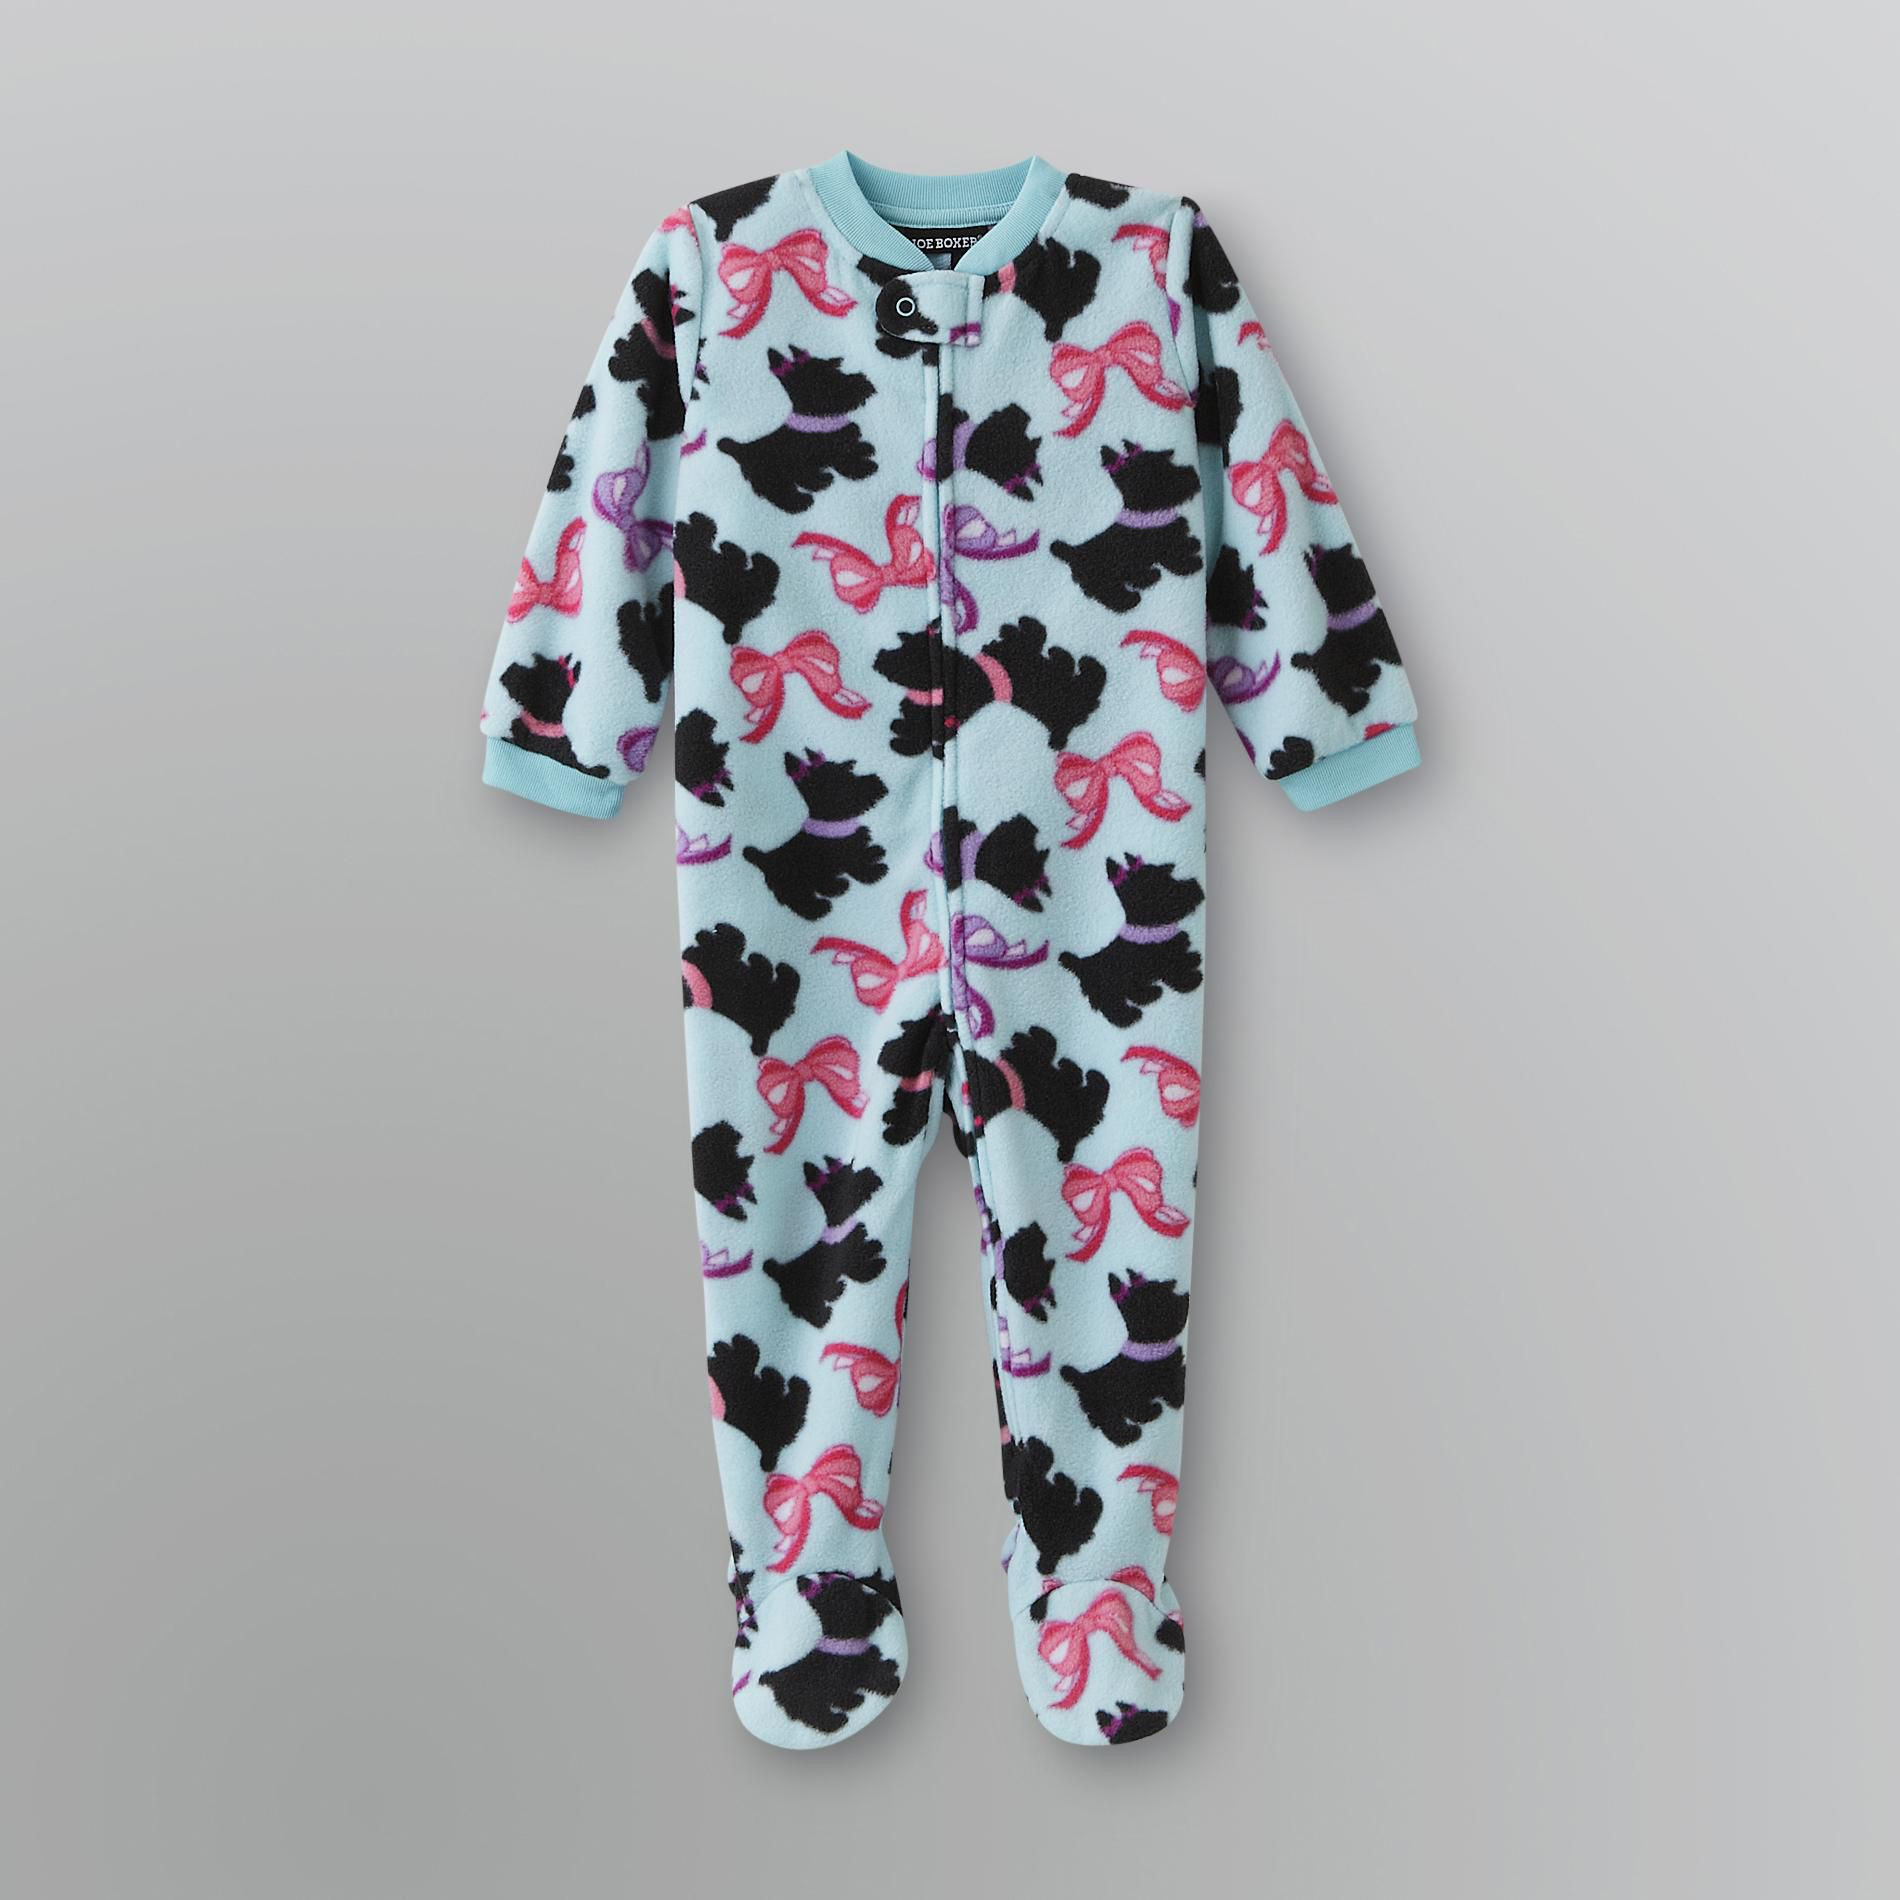 Baby Footed Pajamas Awesome Joe Boxer Infant & toddler Girl S Fleece Footed Sleeper Of Amazing 42 Pictures Baby Footed Pajamas